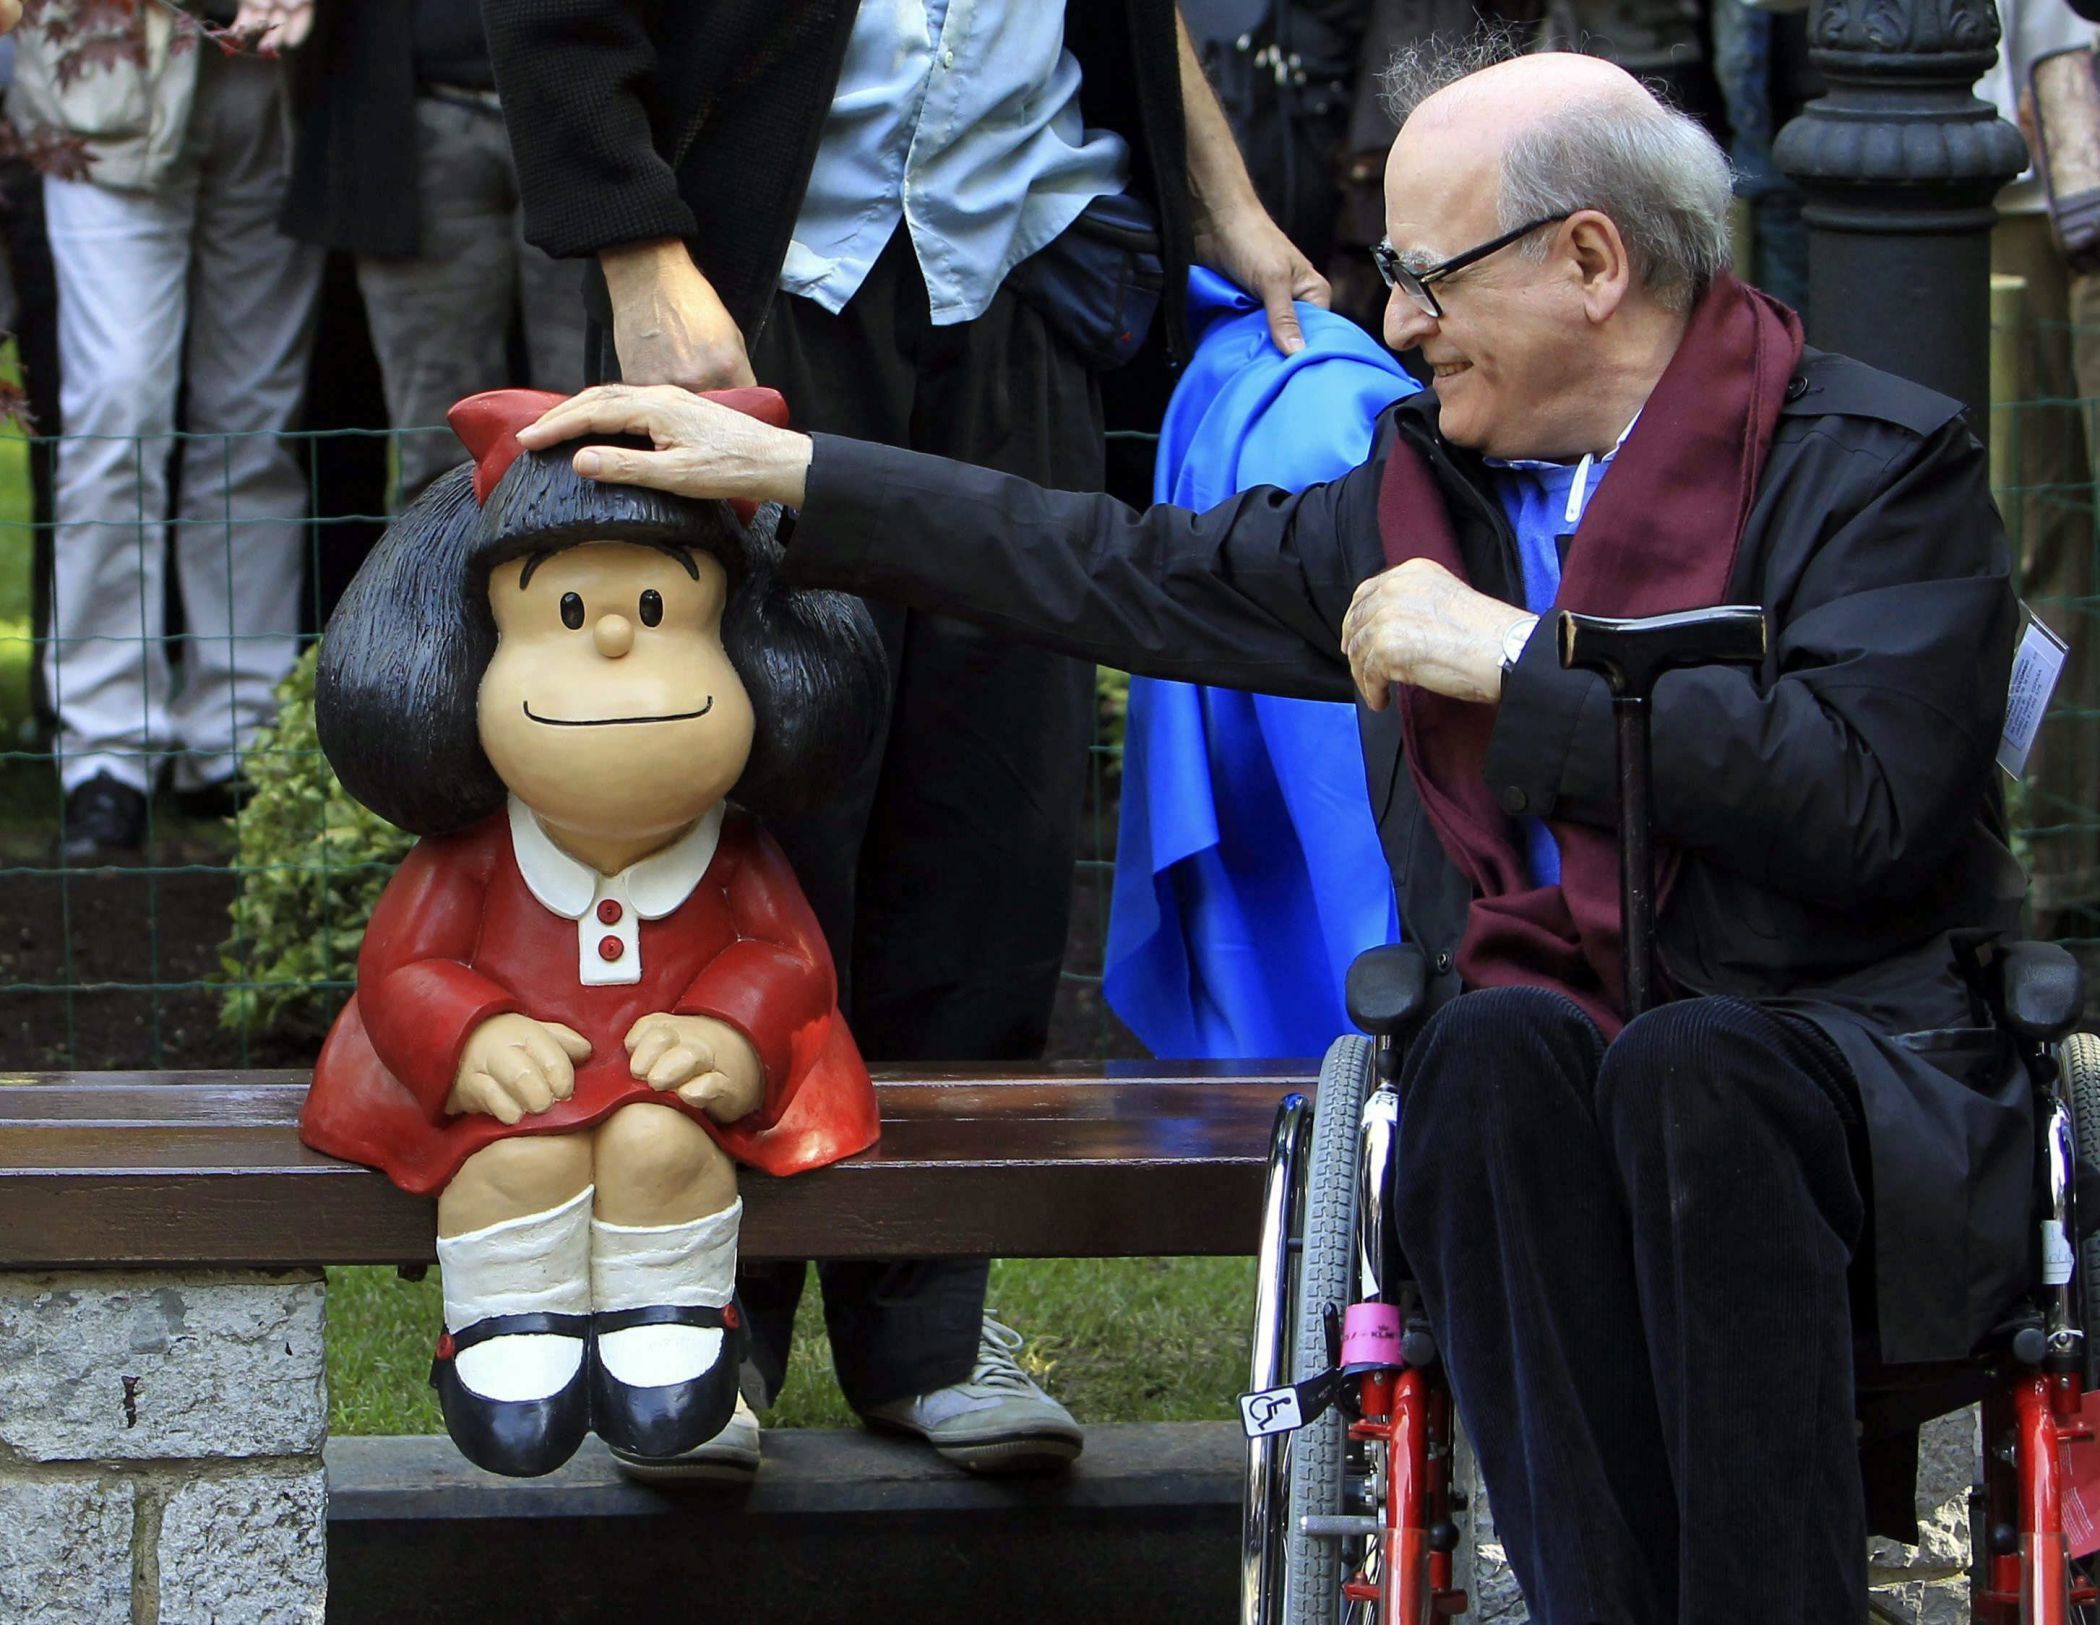 Comic book artist Quino wins 2014 Prince of Asturias Award for Communication and Humanities